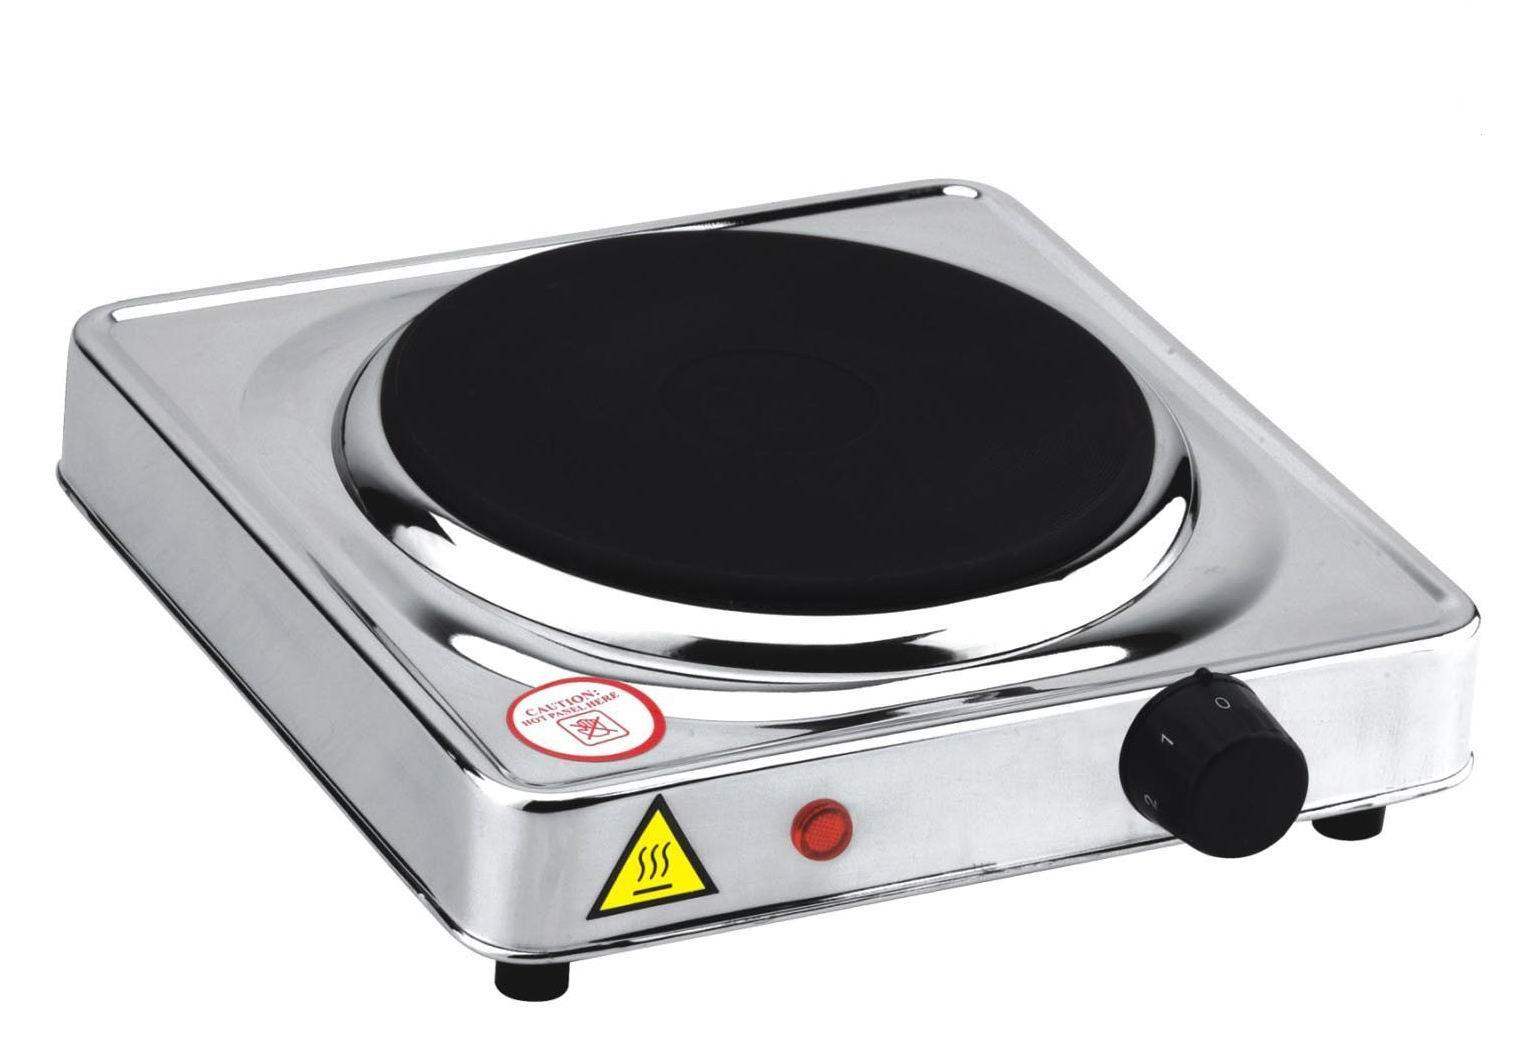 how to use a grill pan on an electric stove